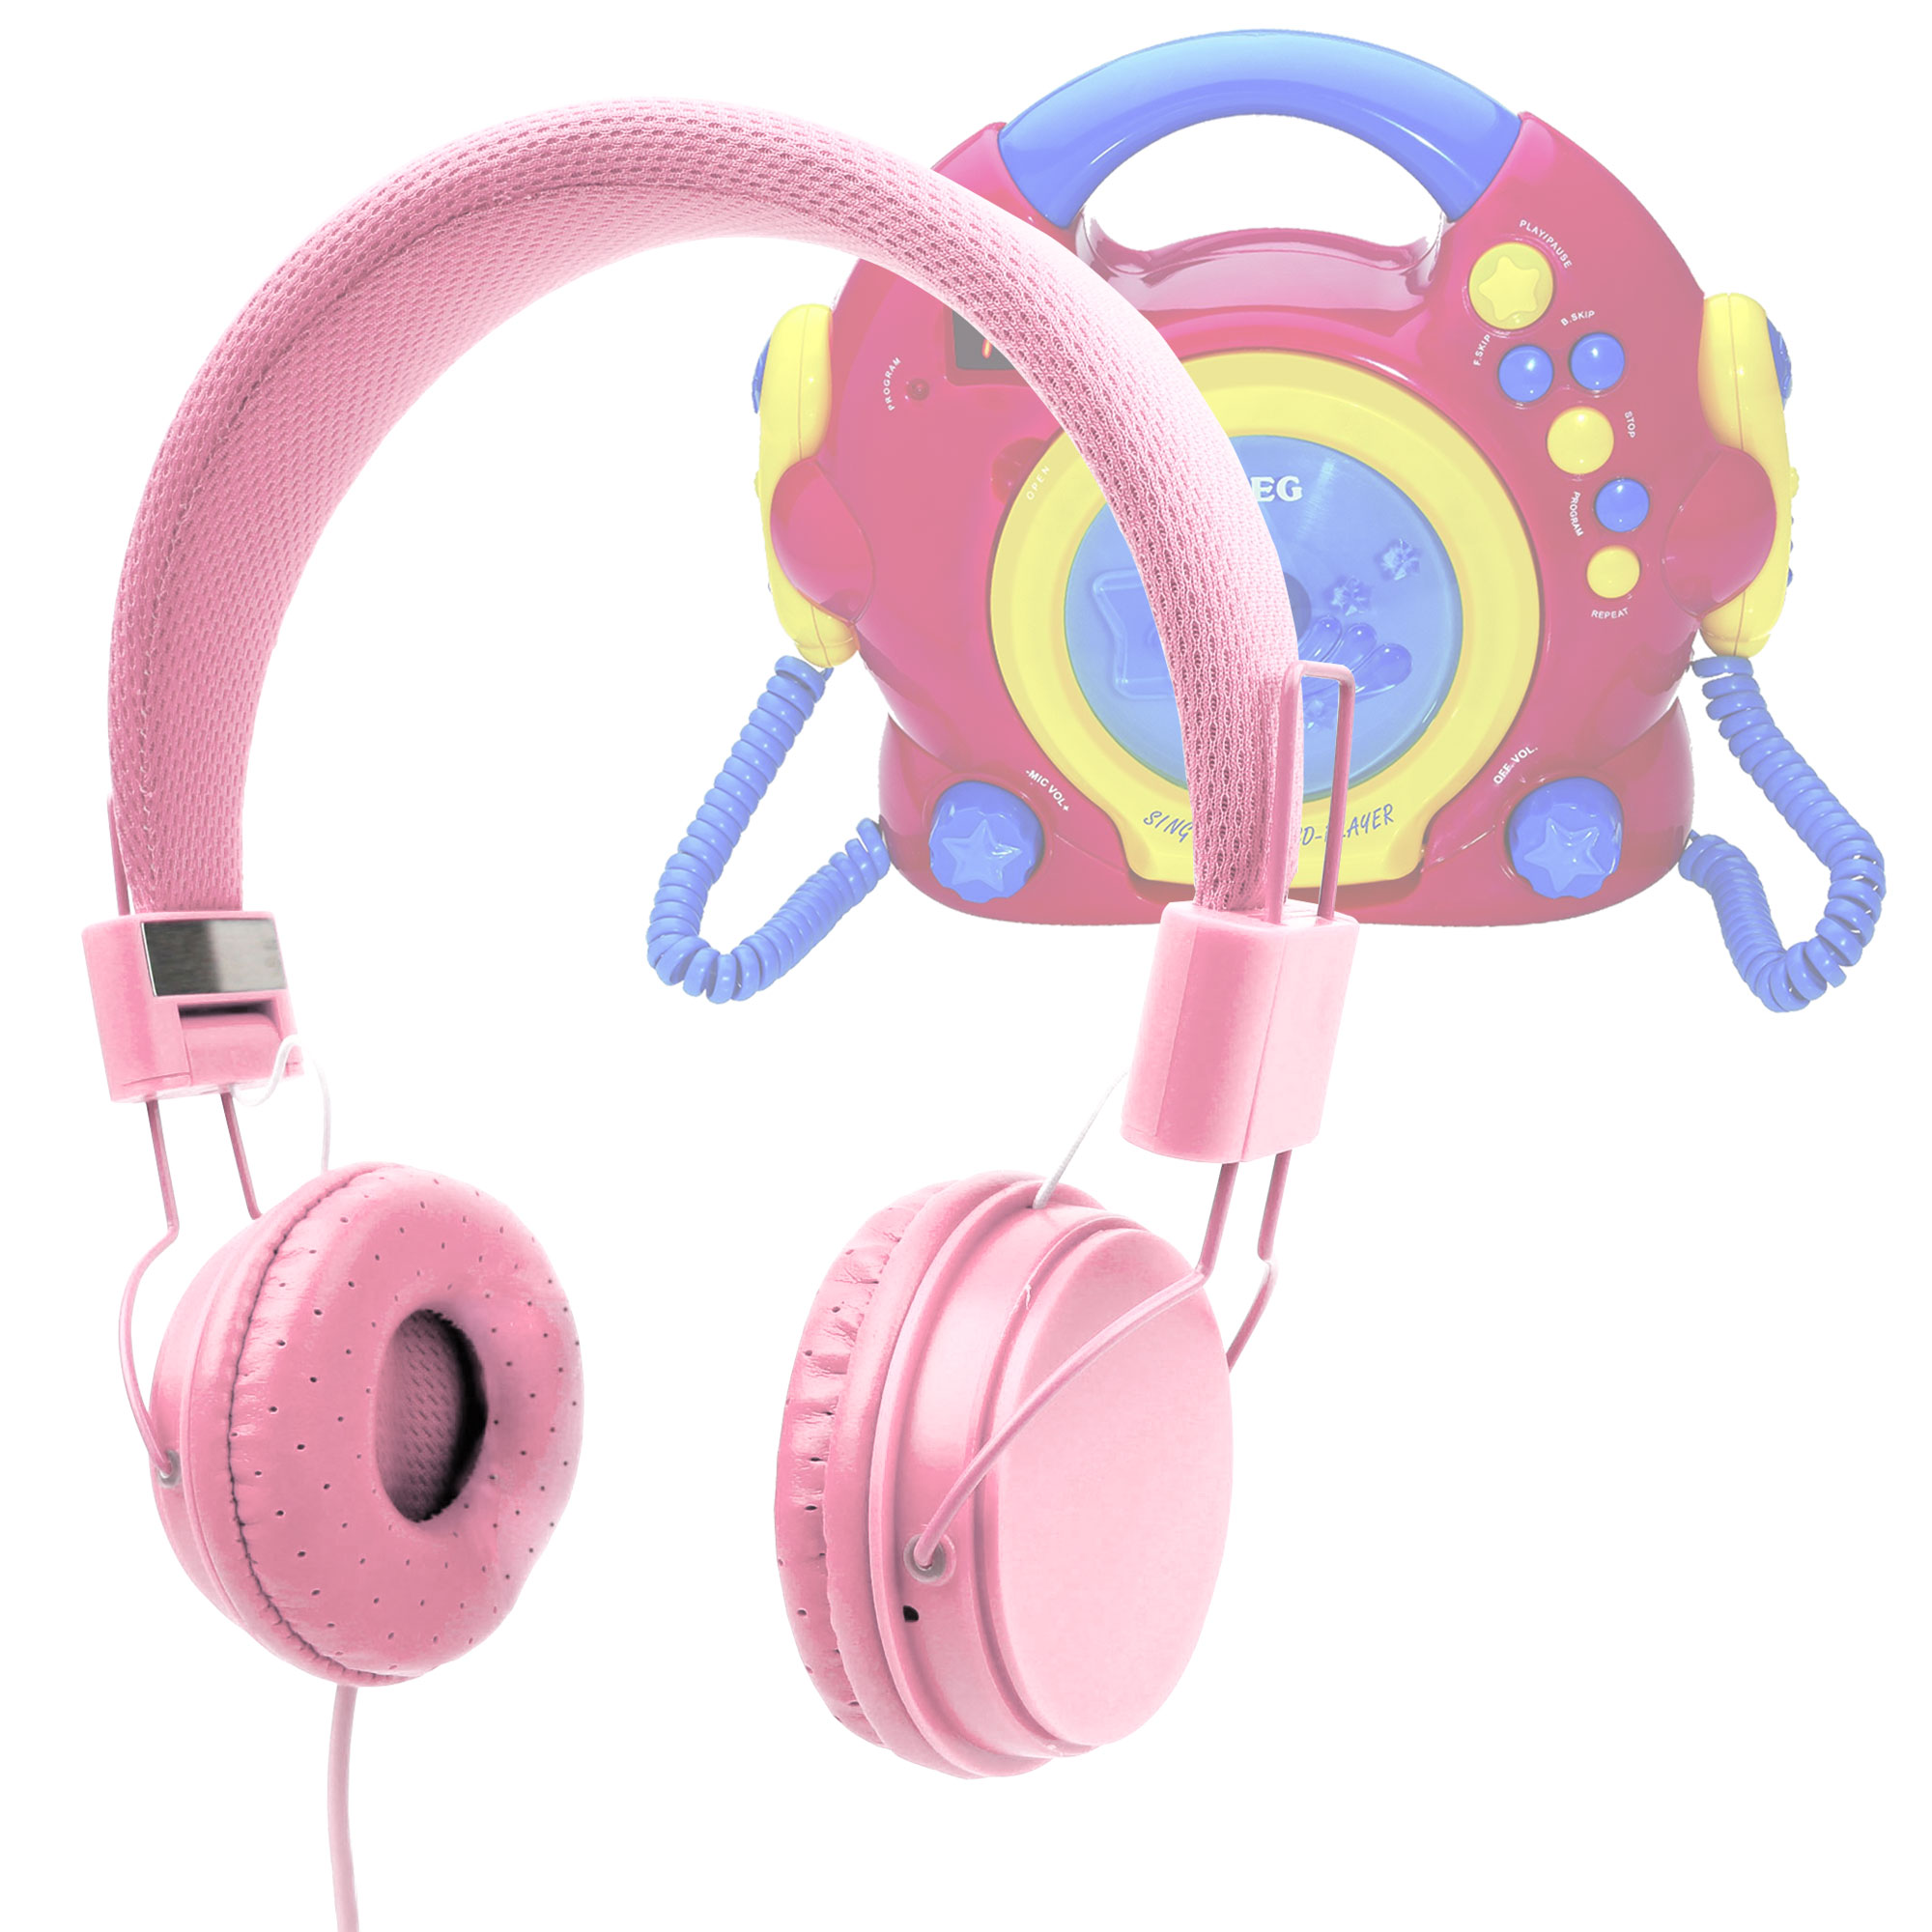 casque rose enfant pour aeg lecteur cd portable enfants cdk 4229 sing along ebay. Black Bedroom Furniture Sets. Home Design Ideas